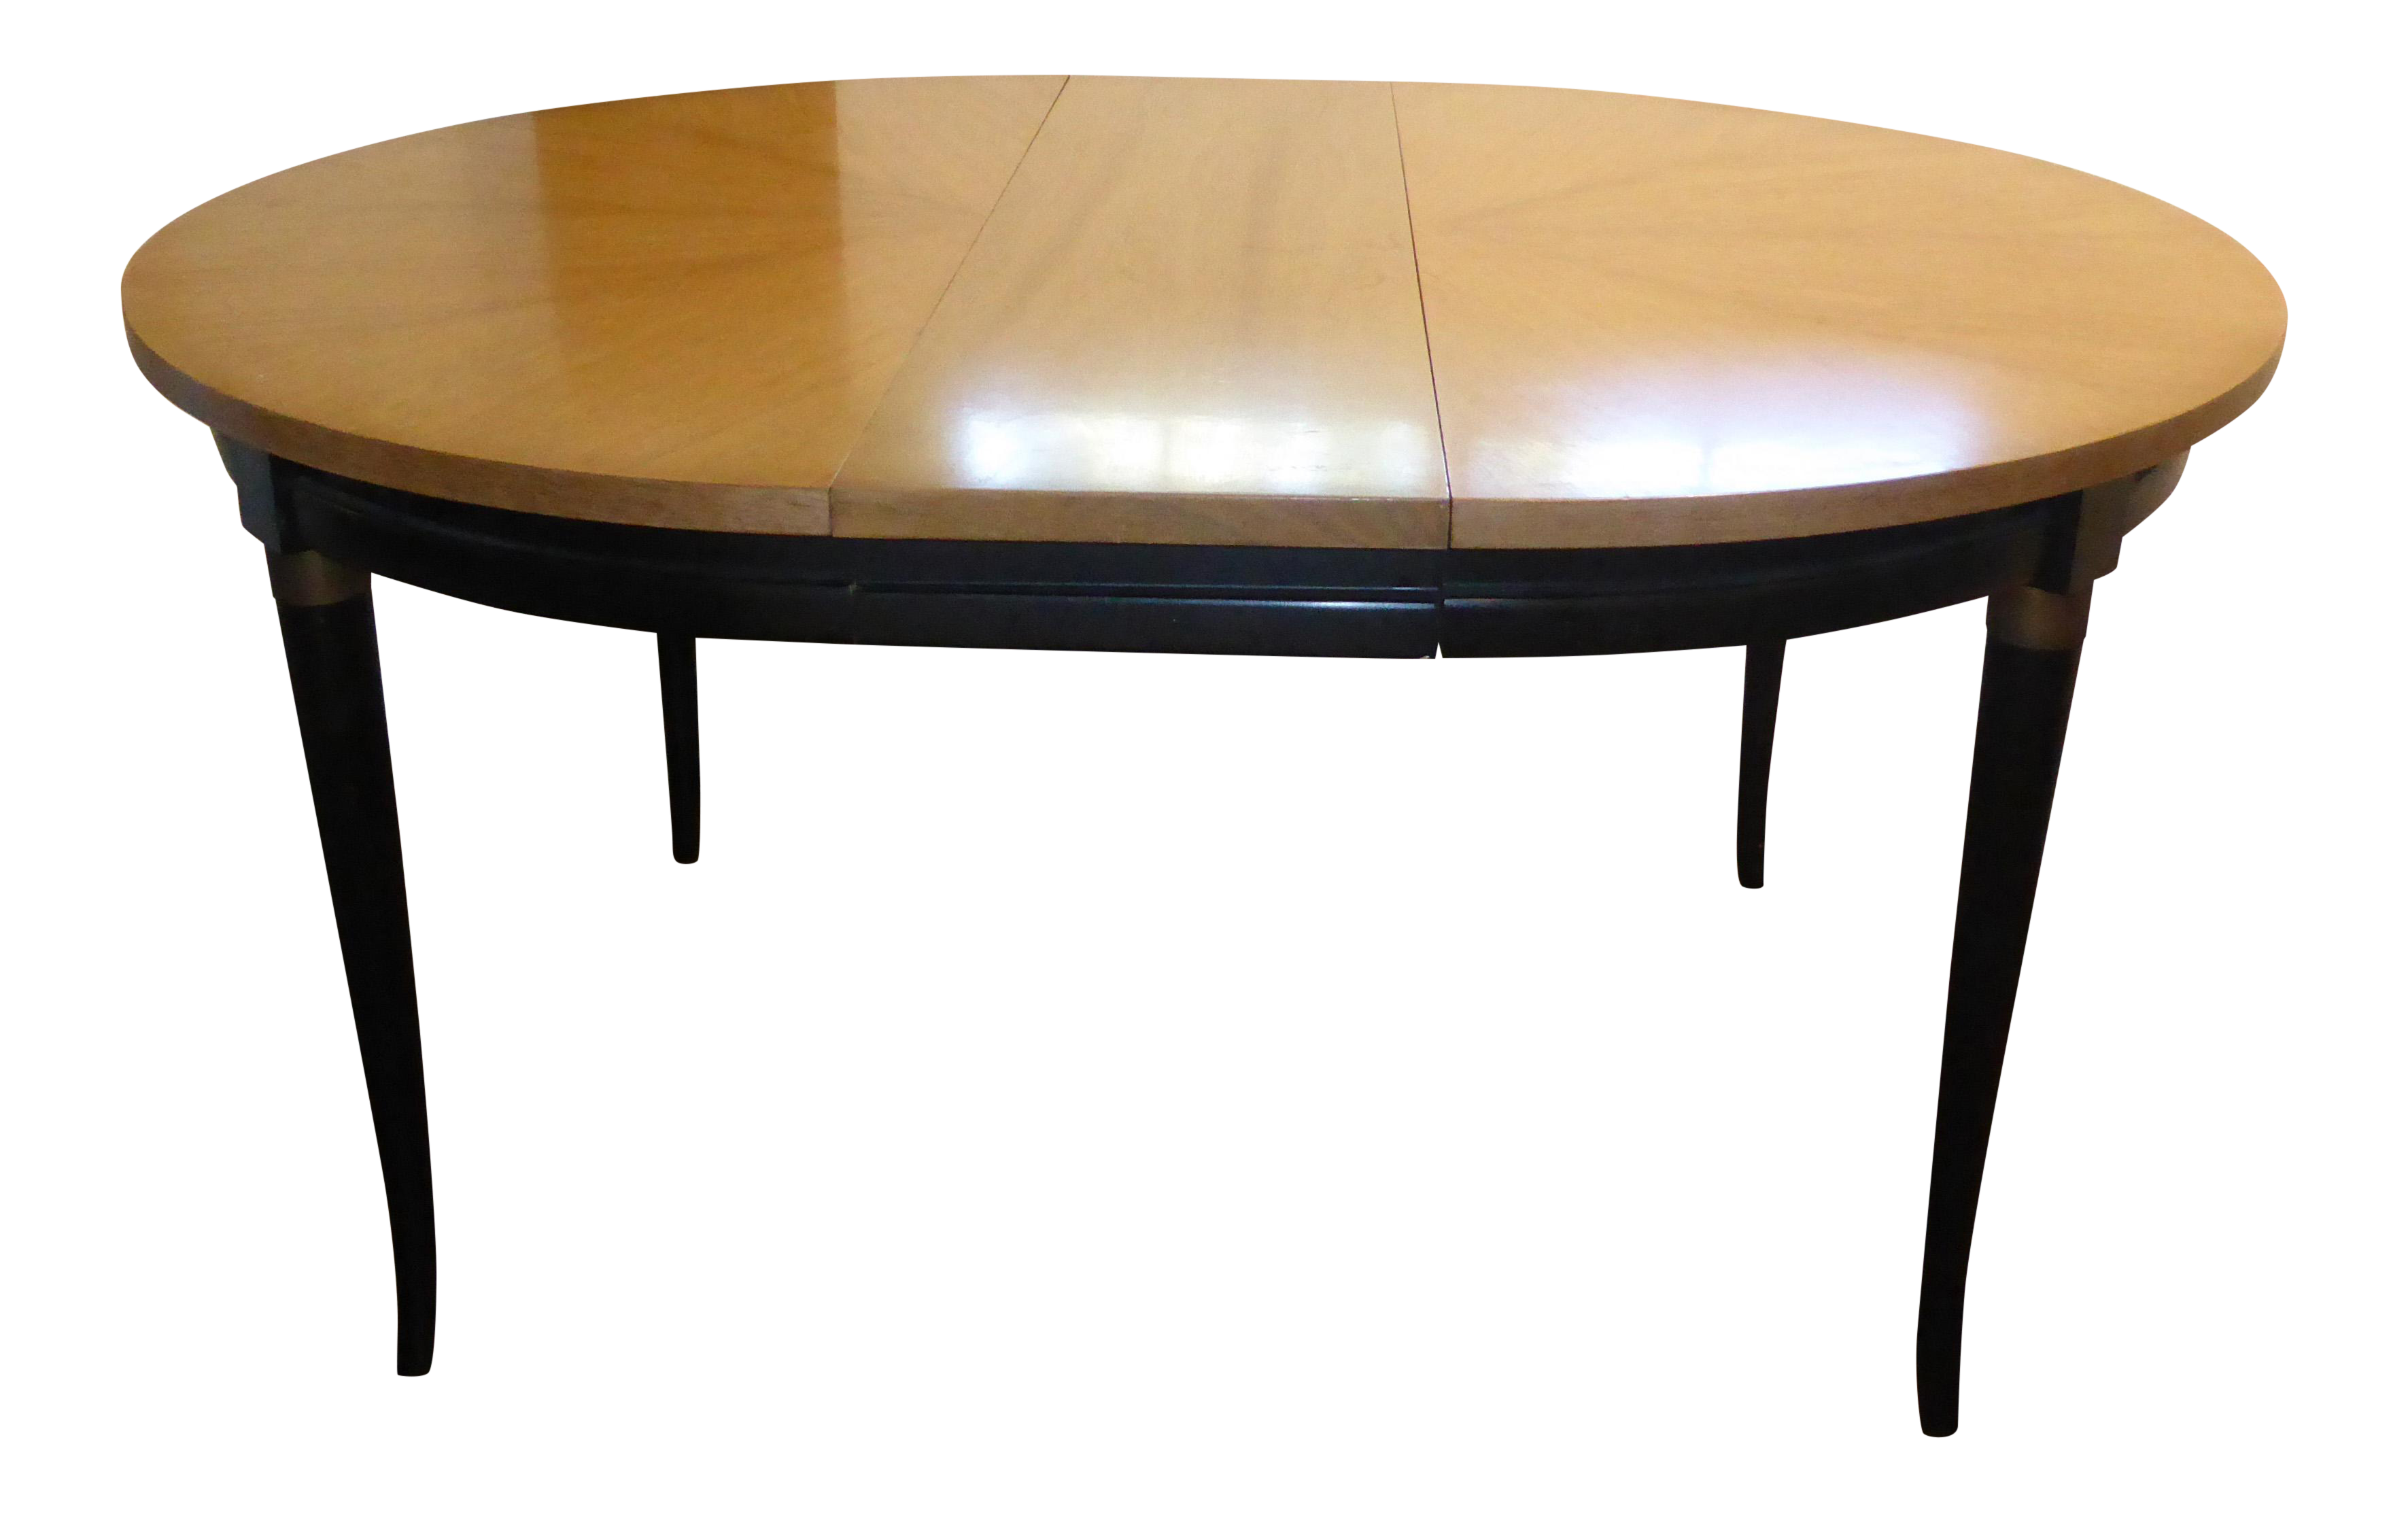 Vintage Mid Century Modern Dining Table With 2 Leaves By American Of Martinsville Chairish